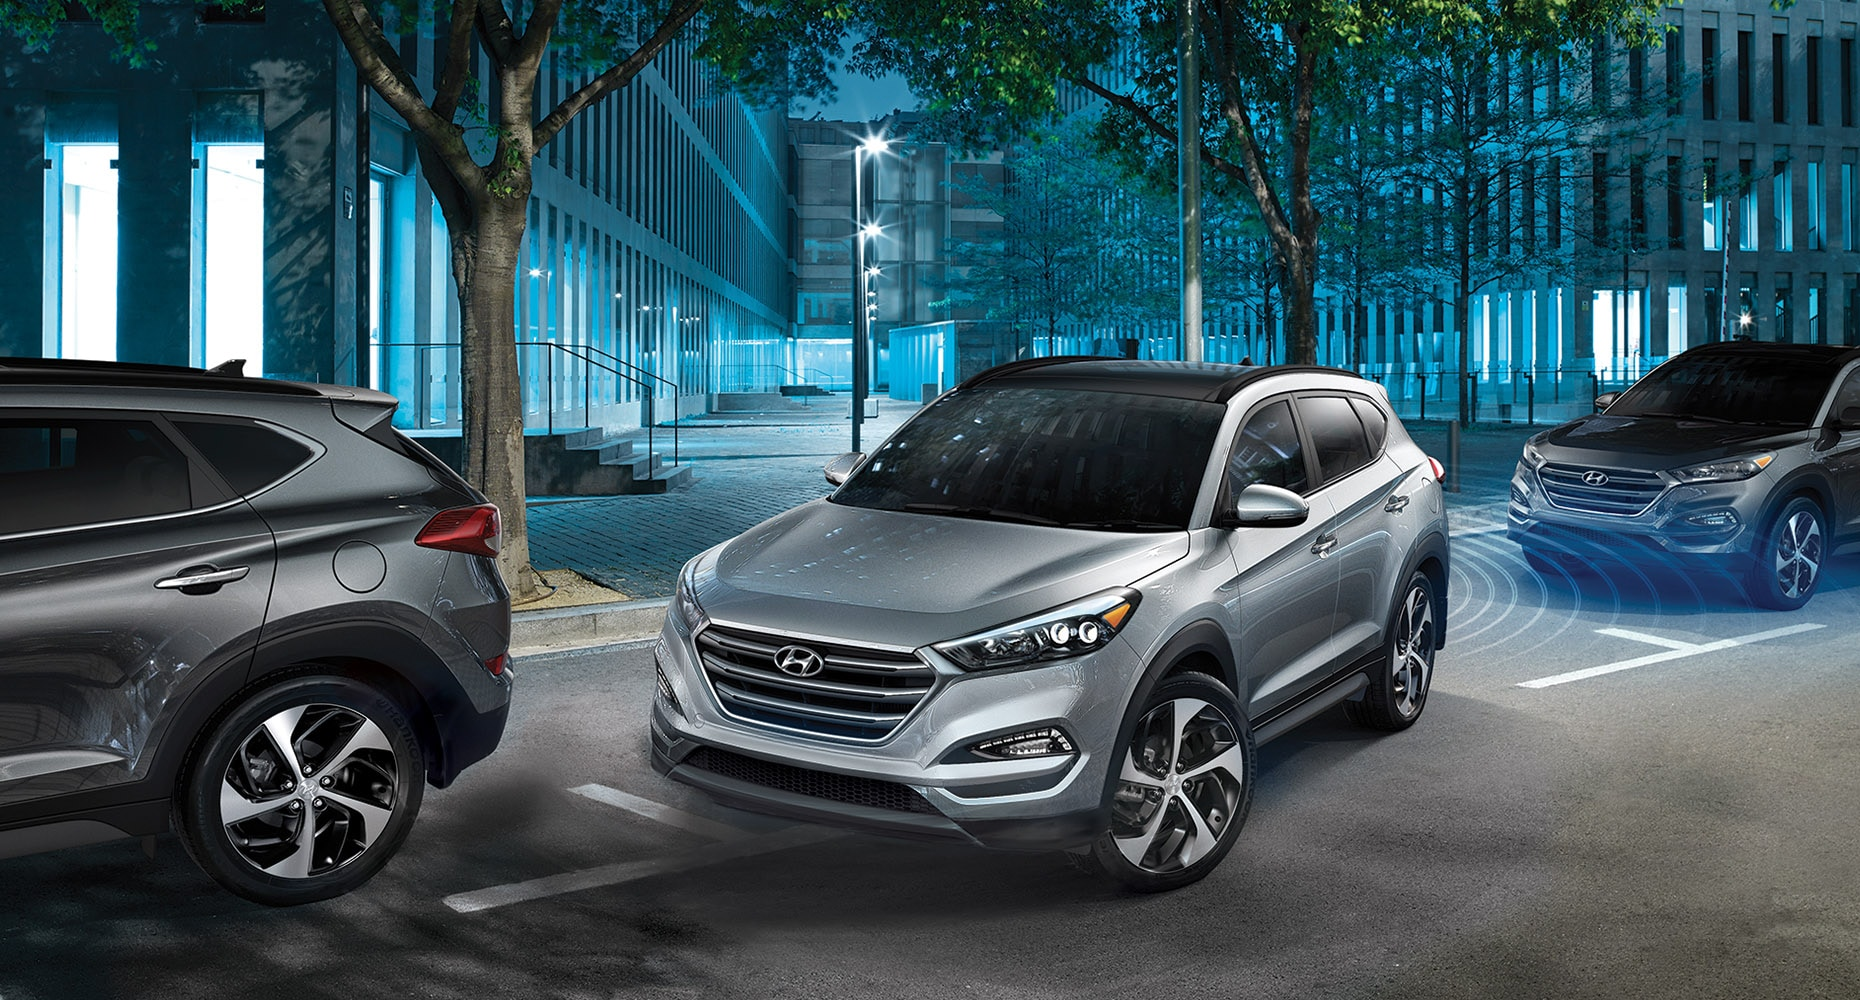 2018 Hyundai Tucson with Android Auto in Winnipeg, MB.